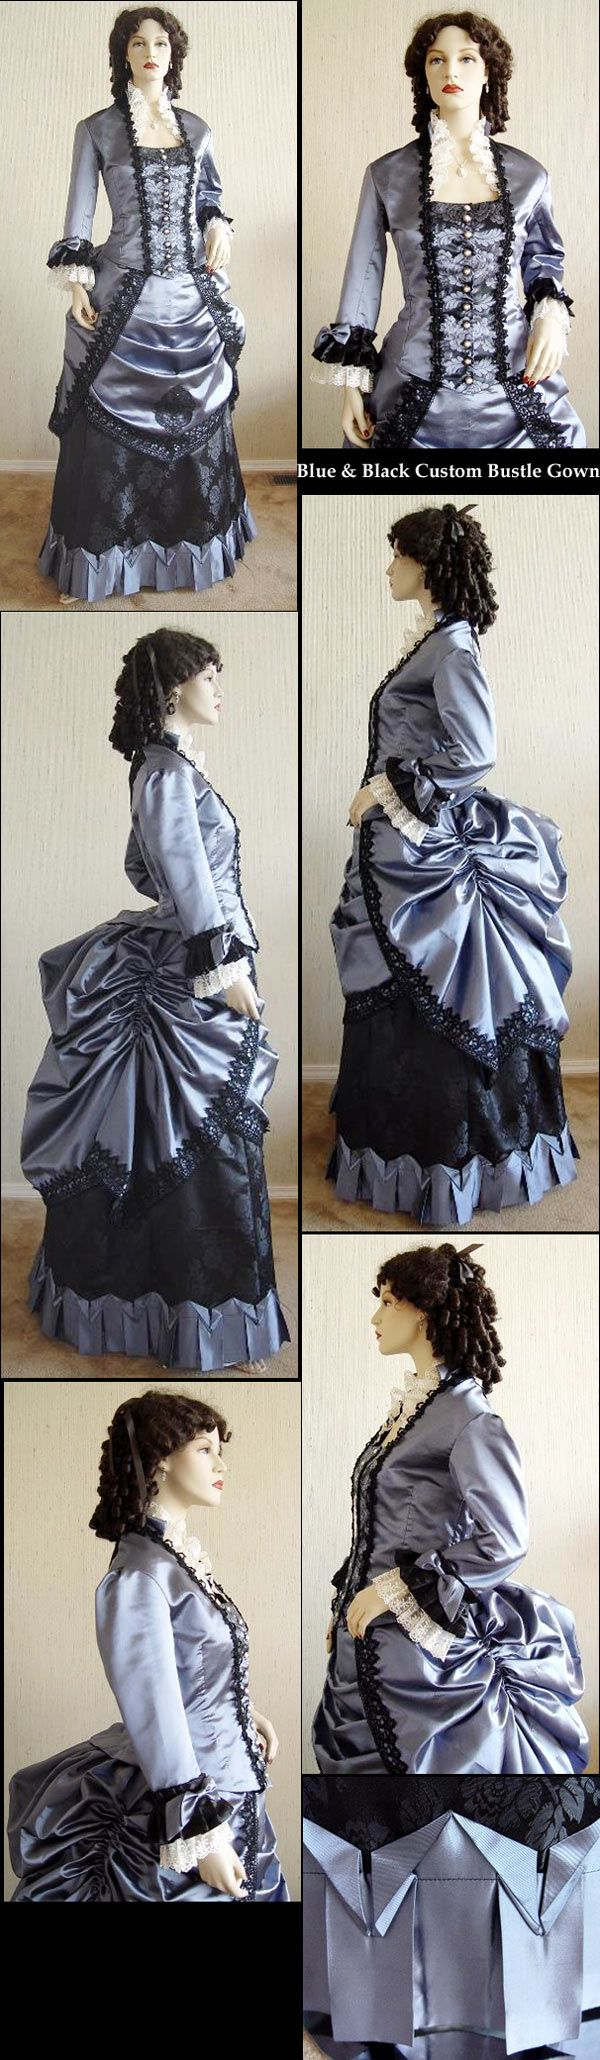 Hall Christine by MADE CUSTOM Costume Gown Bustle 1880s Victorian